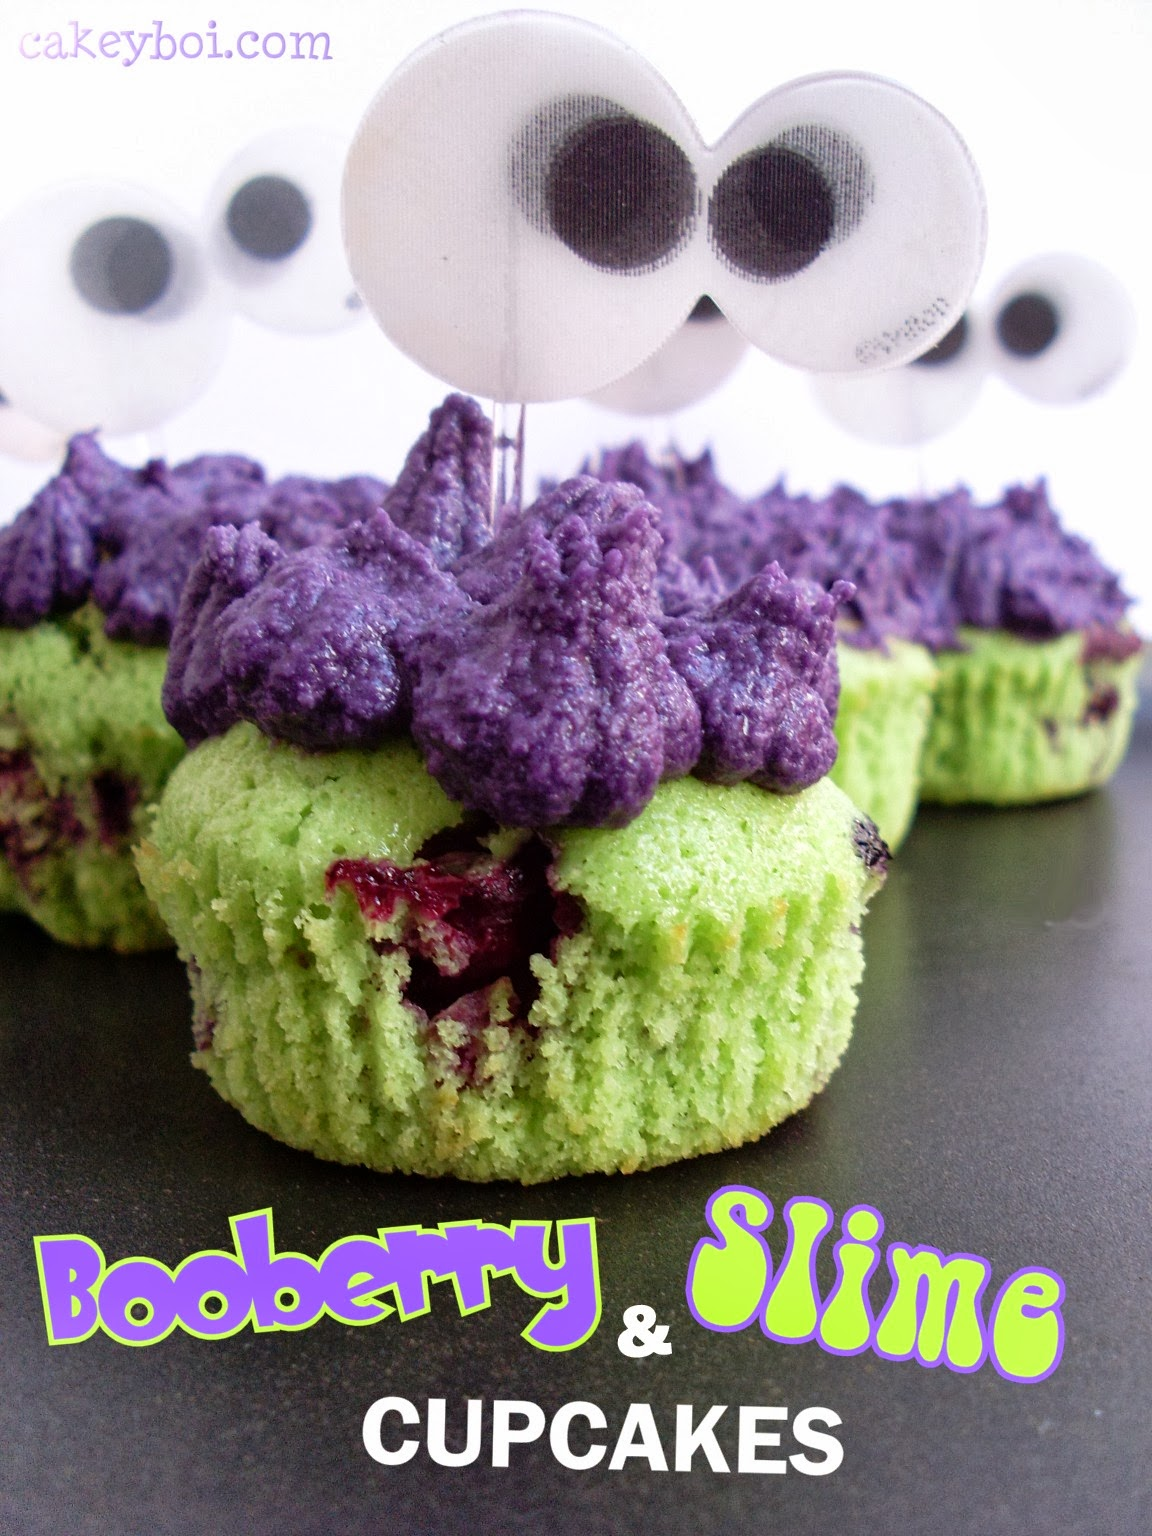 Booberry and Slime Cupcakes